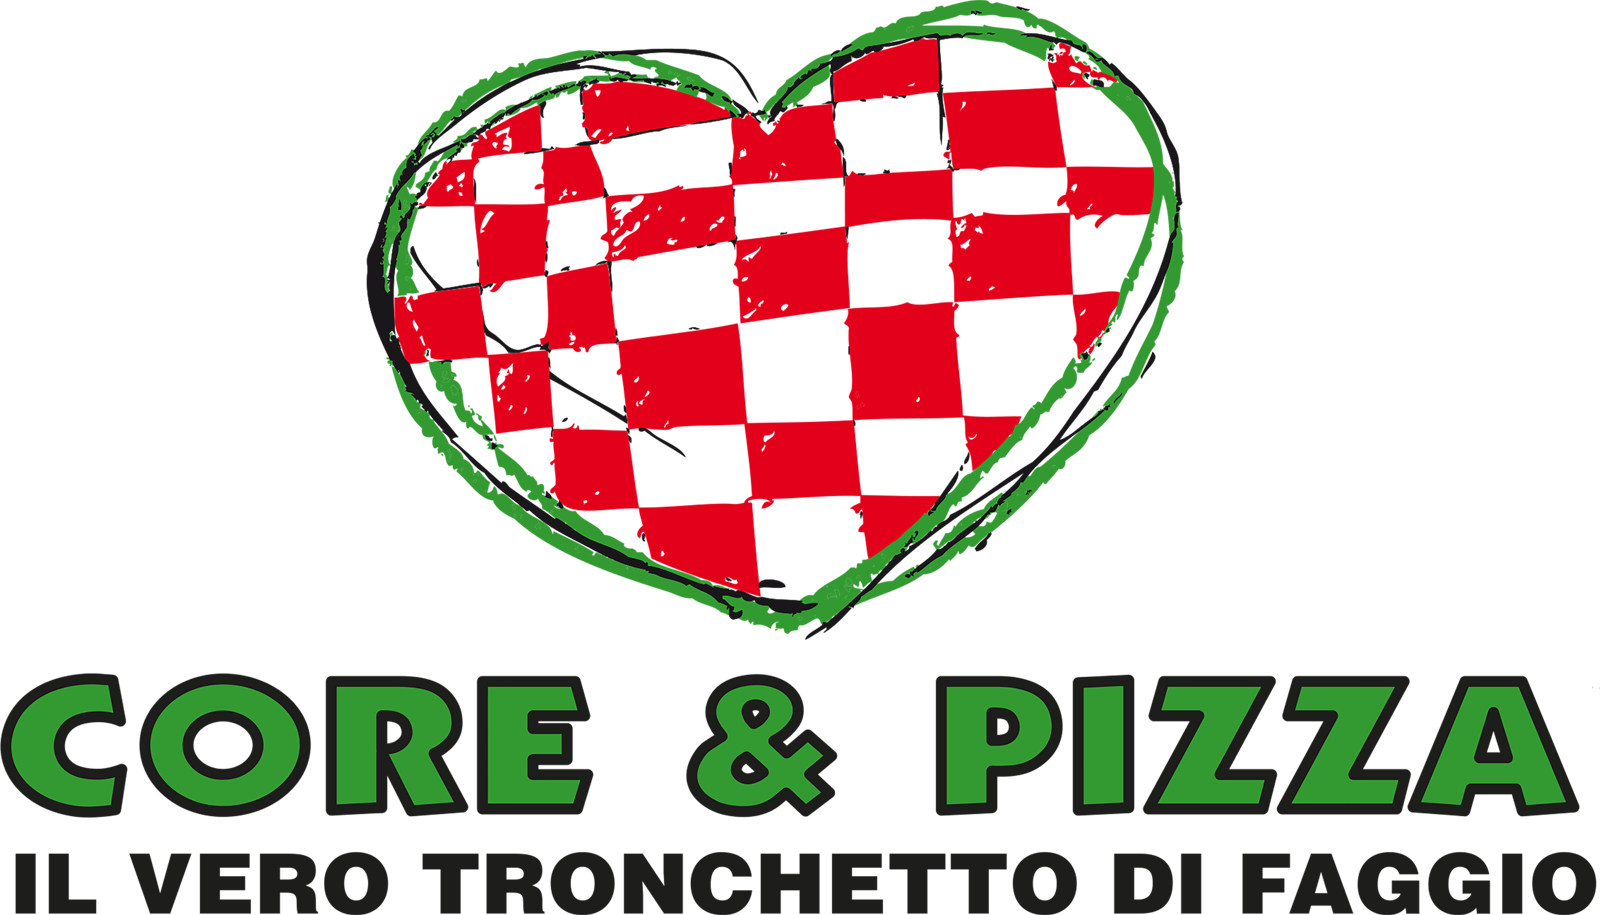 Core e Pizza Logo